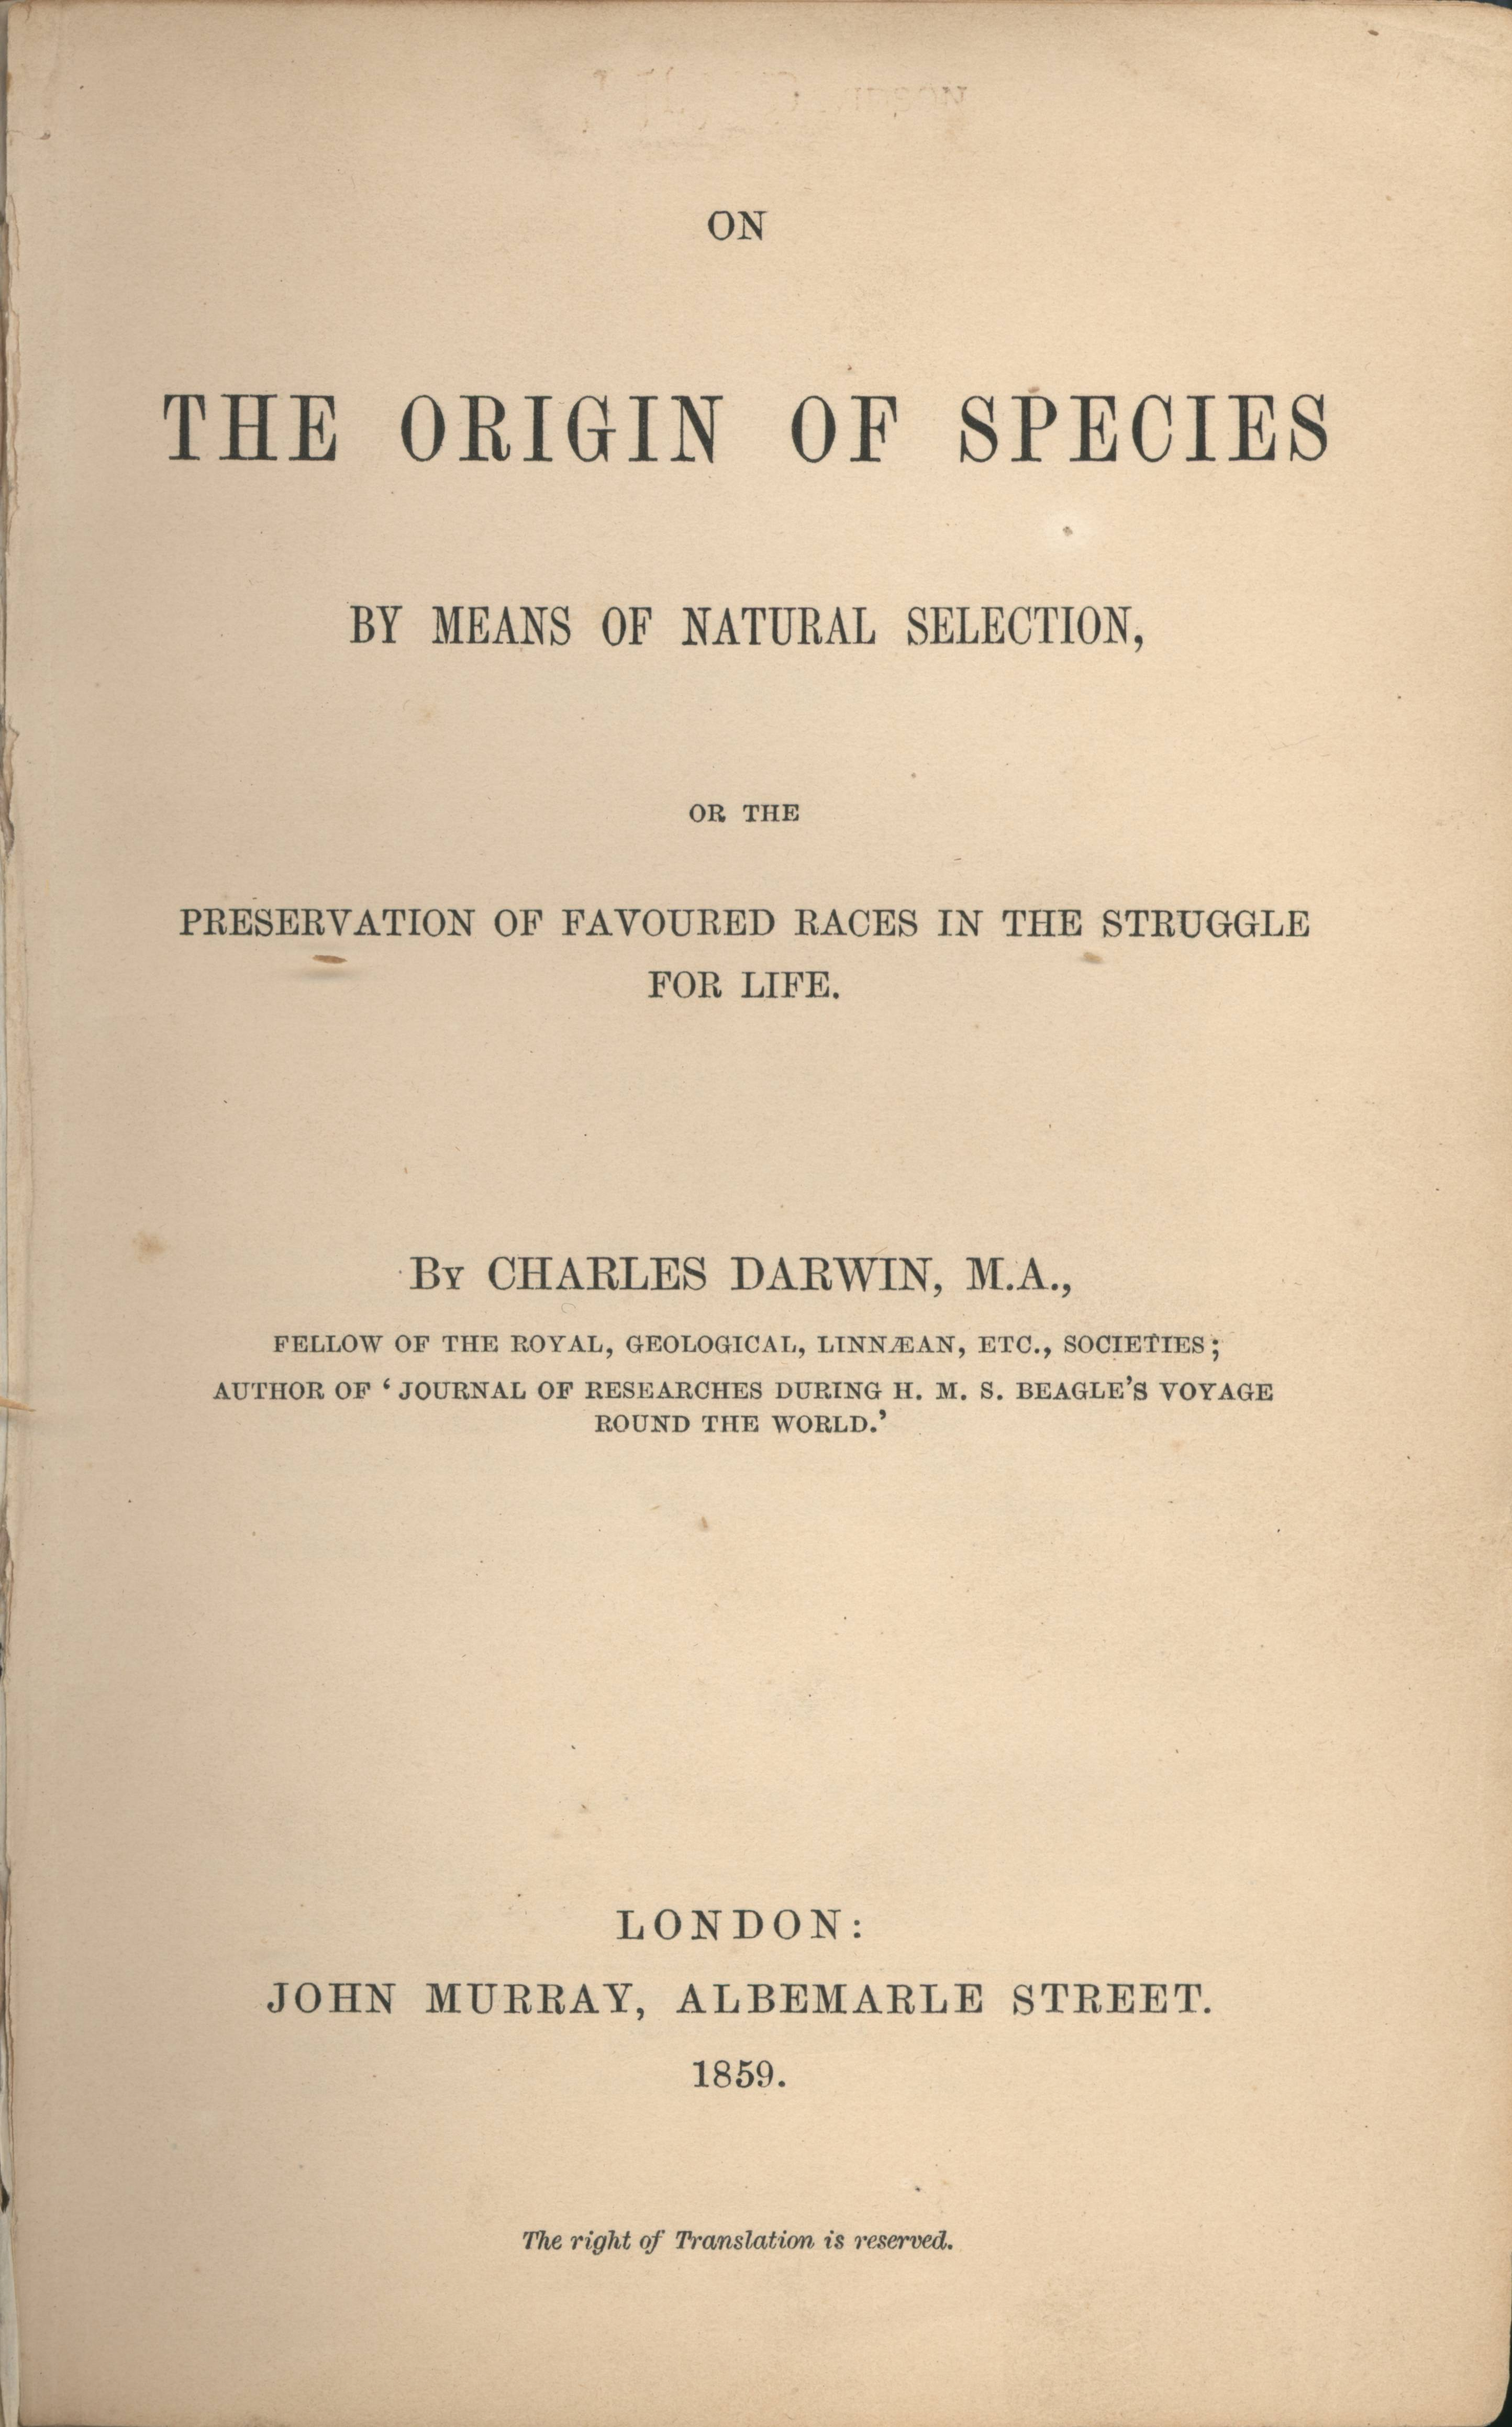 The title page of On the Origin of Species. Image from WikimediaCommons.